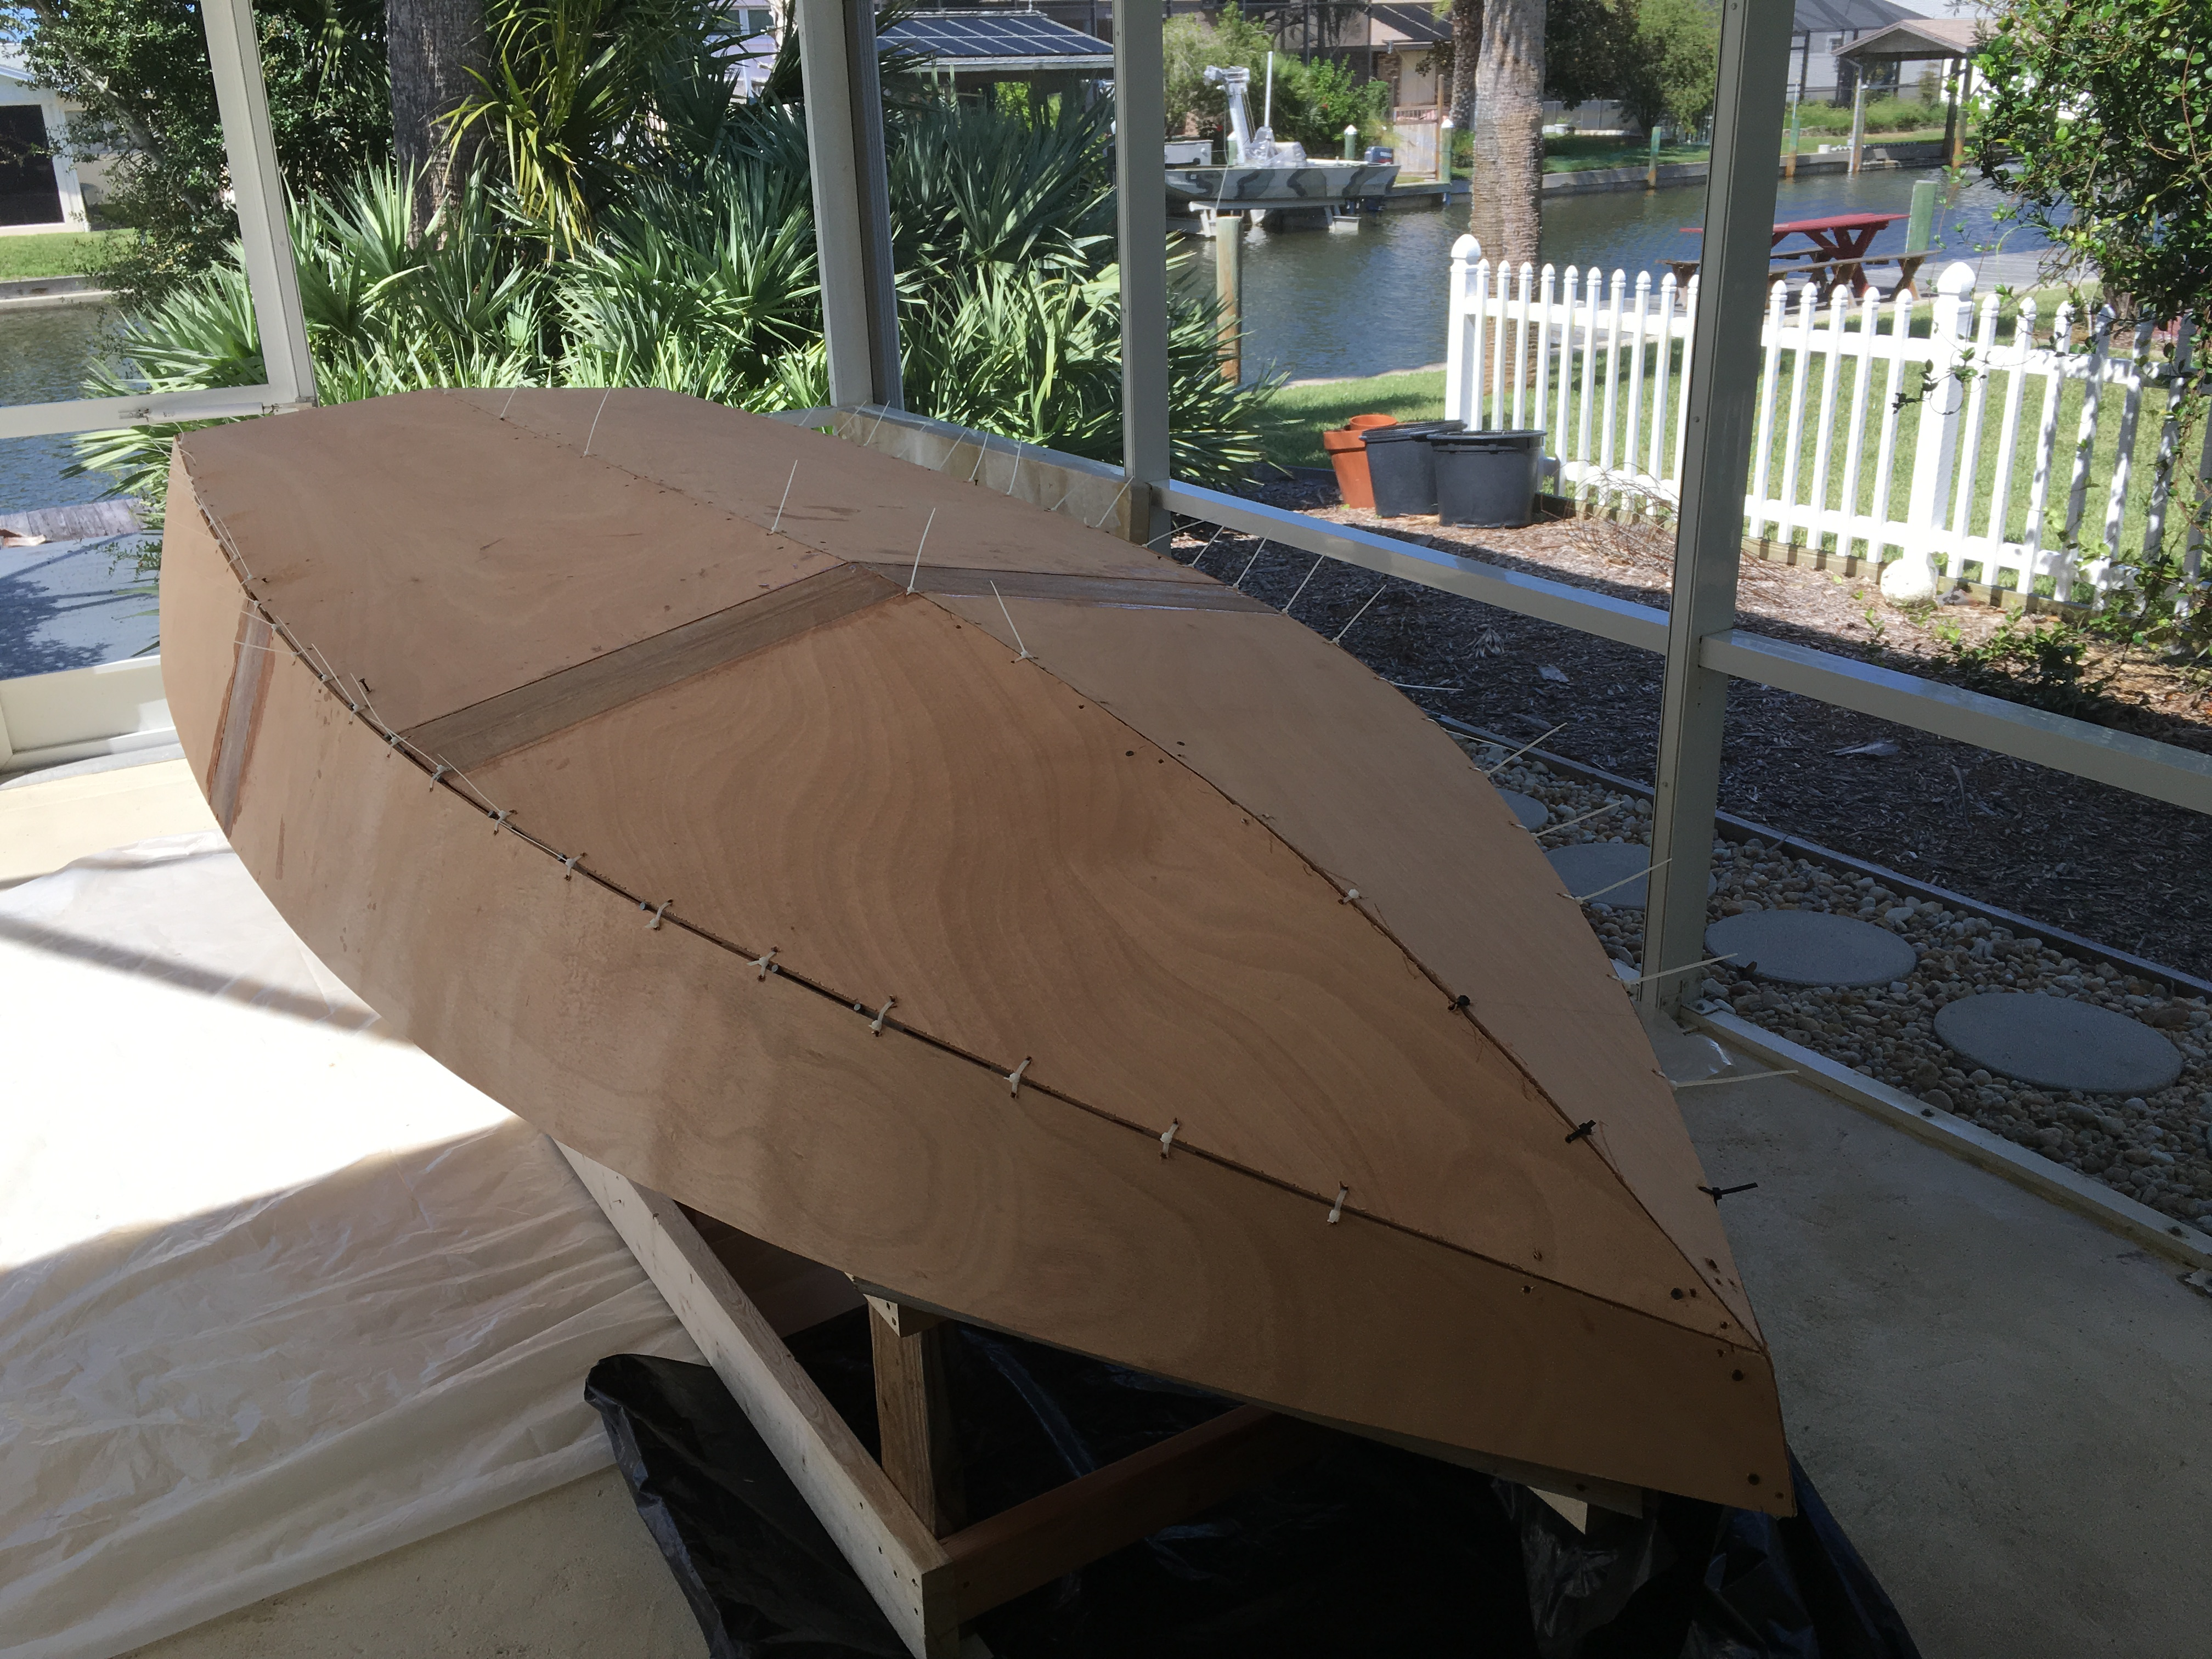 144 East Cape Co together with Wooden Boatbuilder Releases Center Console Kit Option together with John Boat Micro Skiff Build Johnsen Skiff together with YaBB together with Diy. on micro fishing skiffs